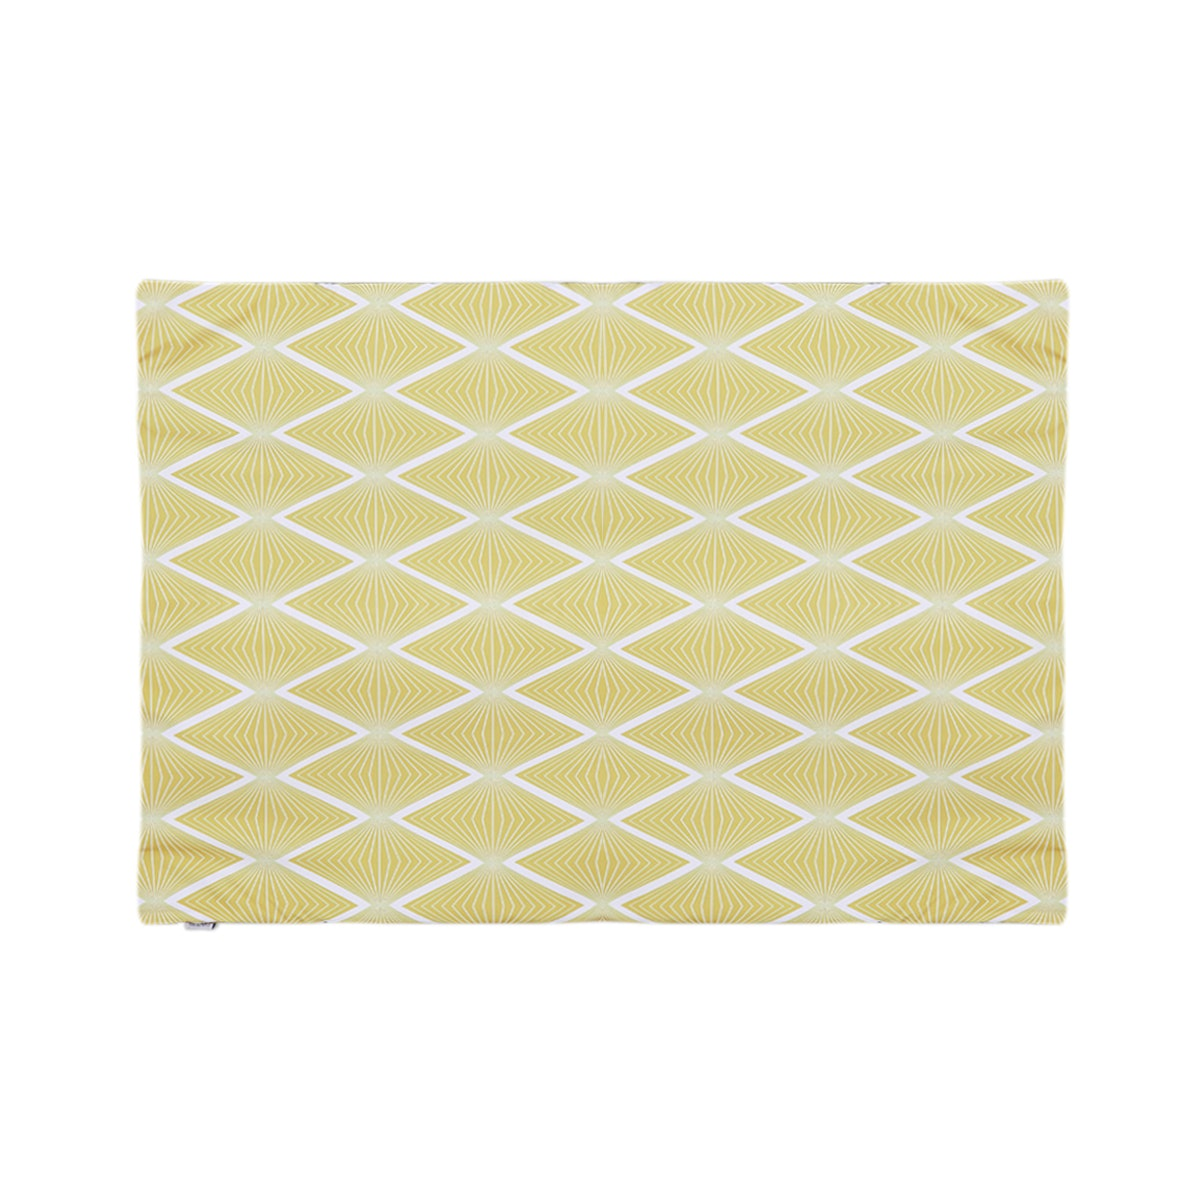 Glerry Home Decor Goldenrod Rug 200x140